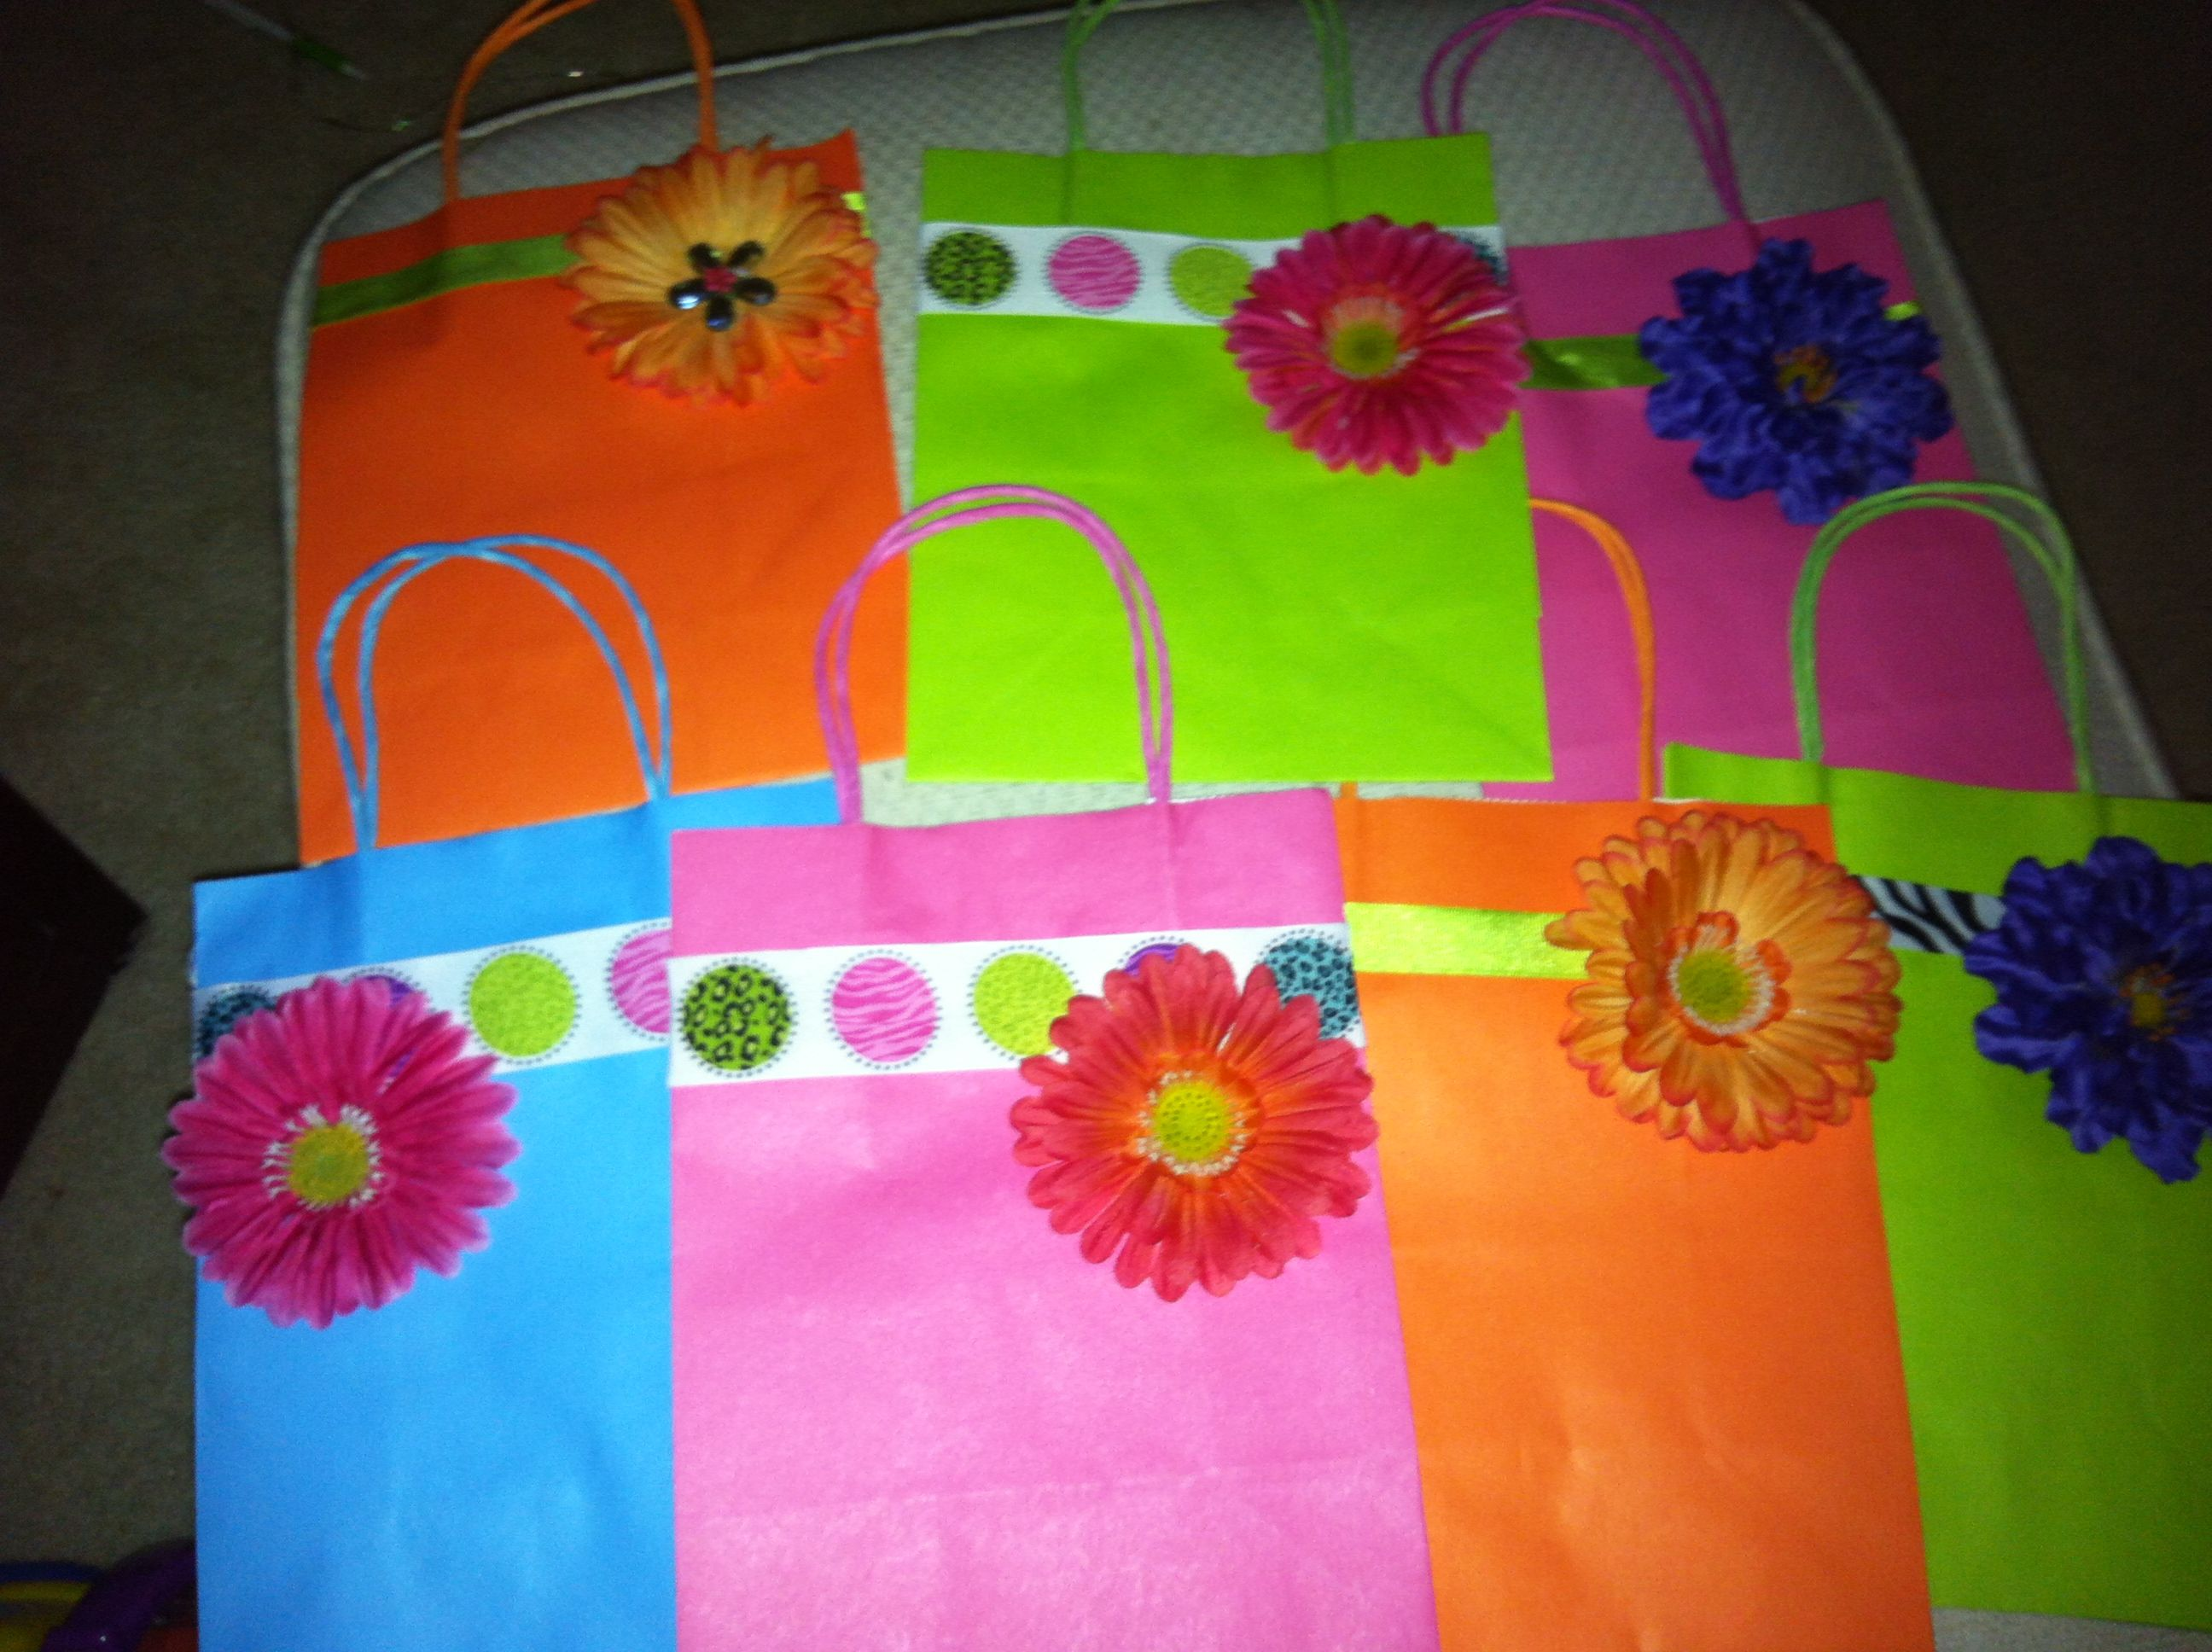 Prettified Bags, I am going to insert 3 coordinating colors of tissue paper per bag & thus I'll have ready-to-go gift bags for teachers etc.